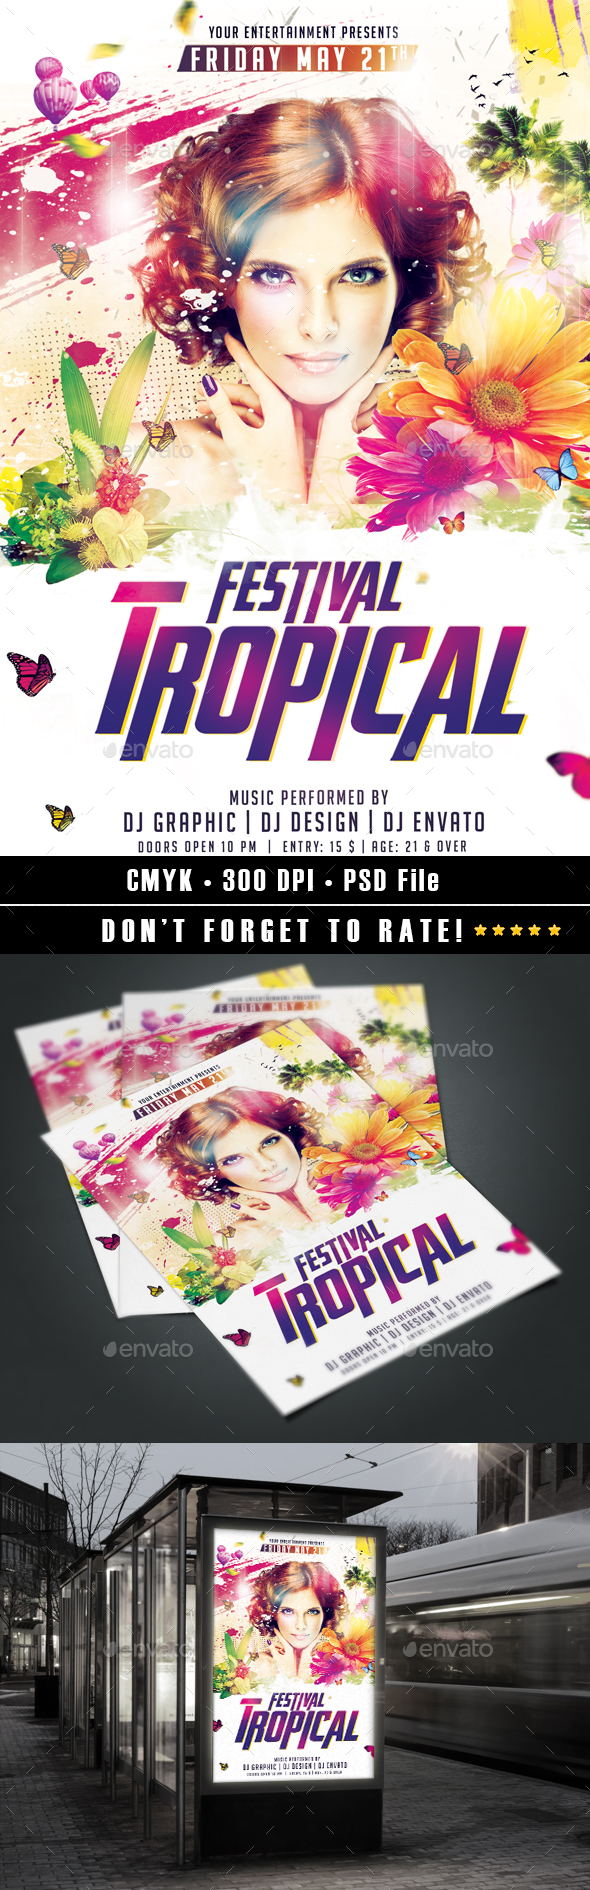 Tropical Festival Flyer - Events Flyers